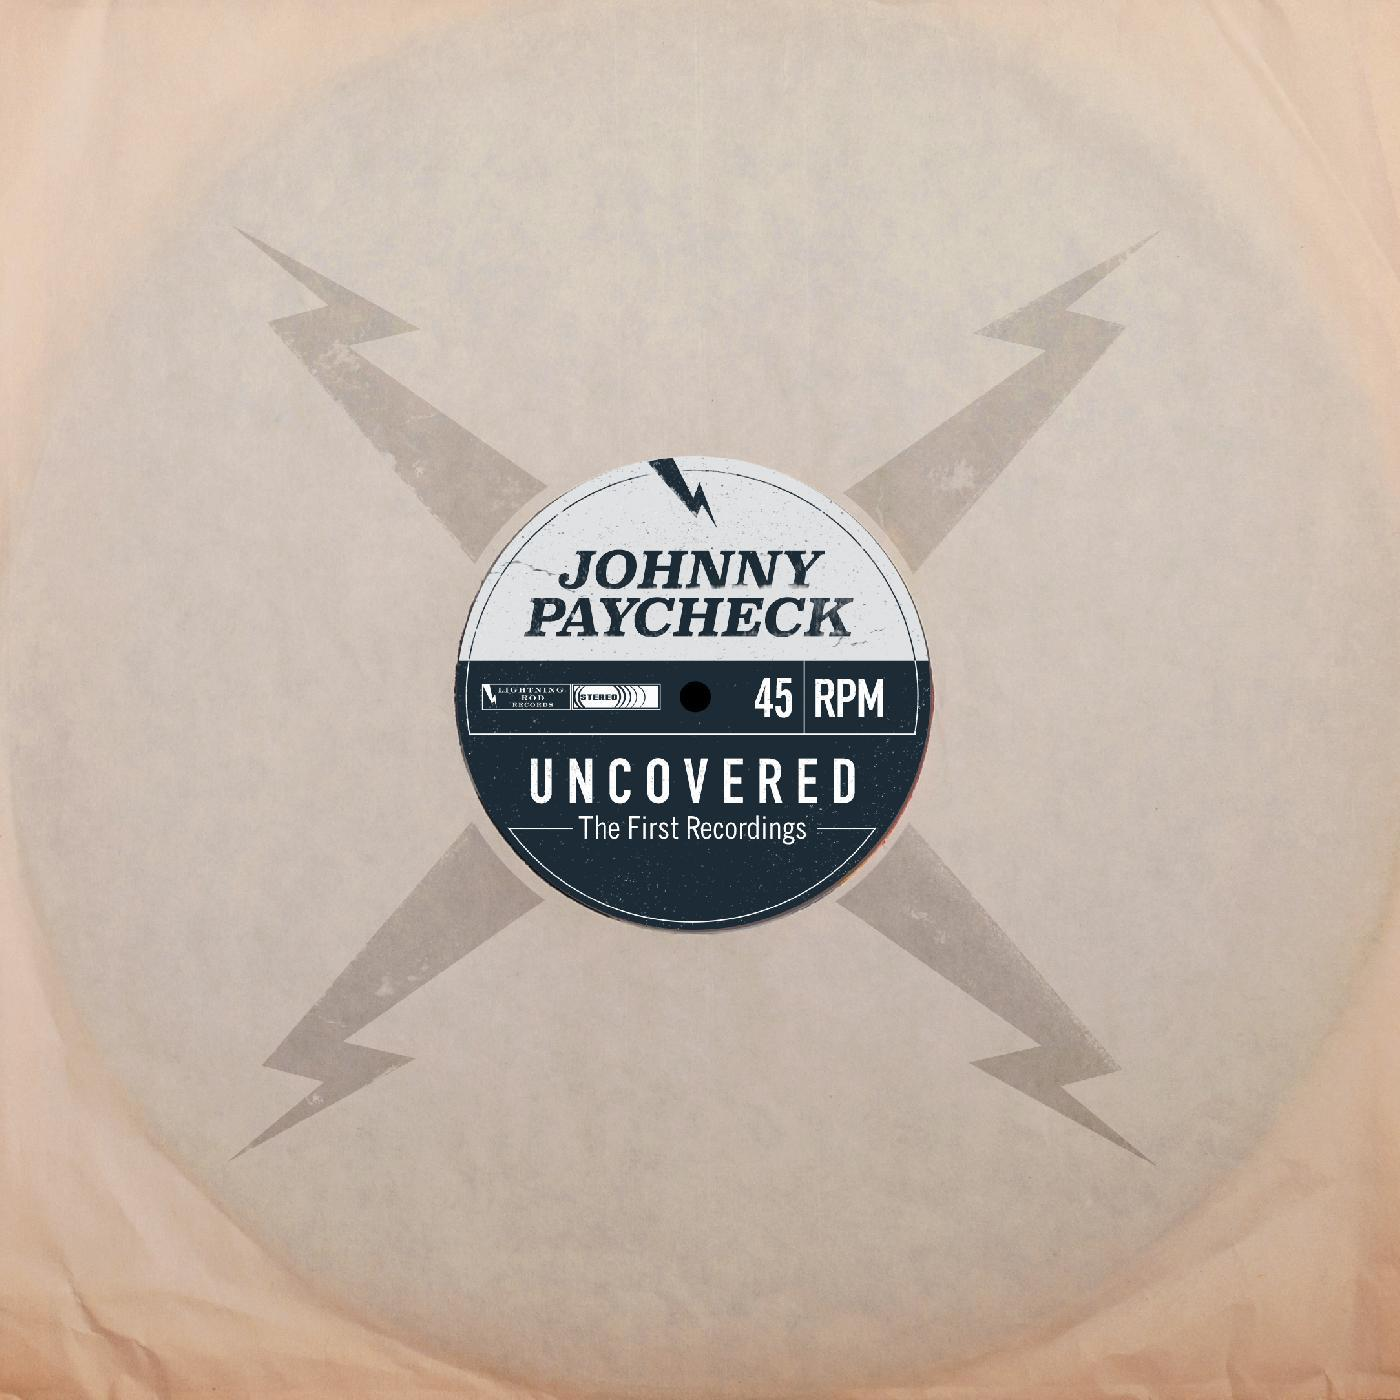 Johnny Paycheck - Uncovered: The First Recordings [RSD Drops 2021]